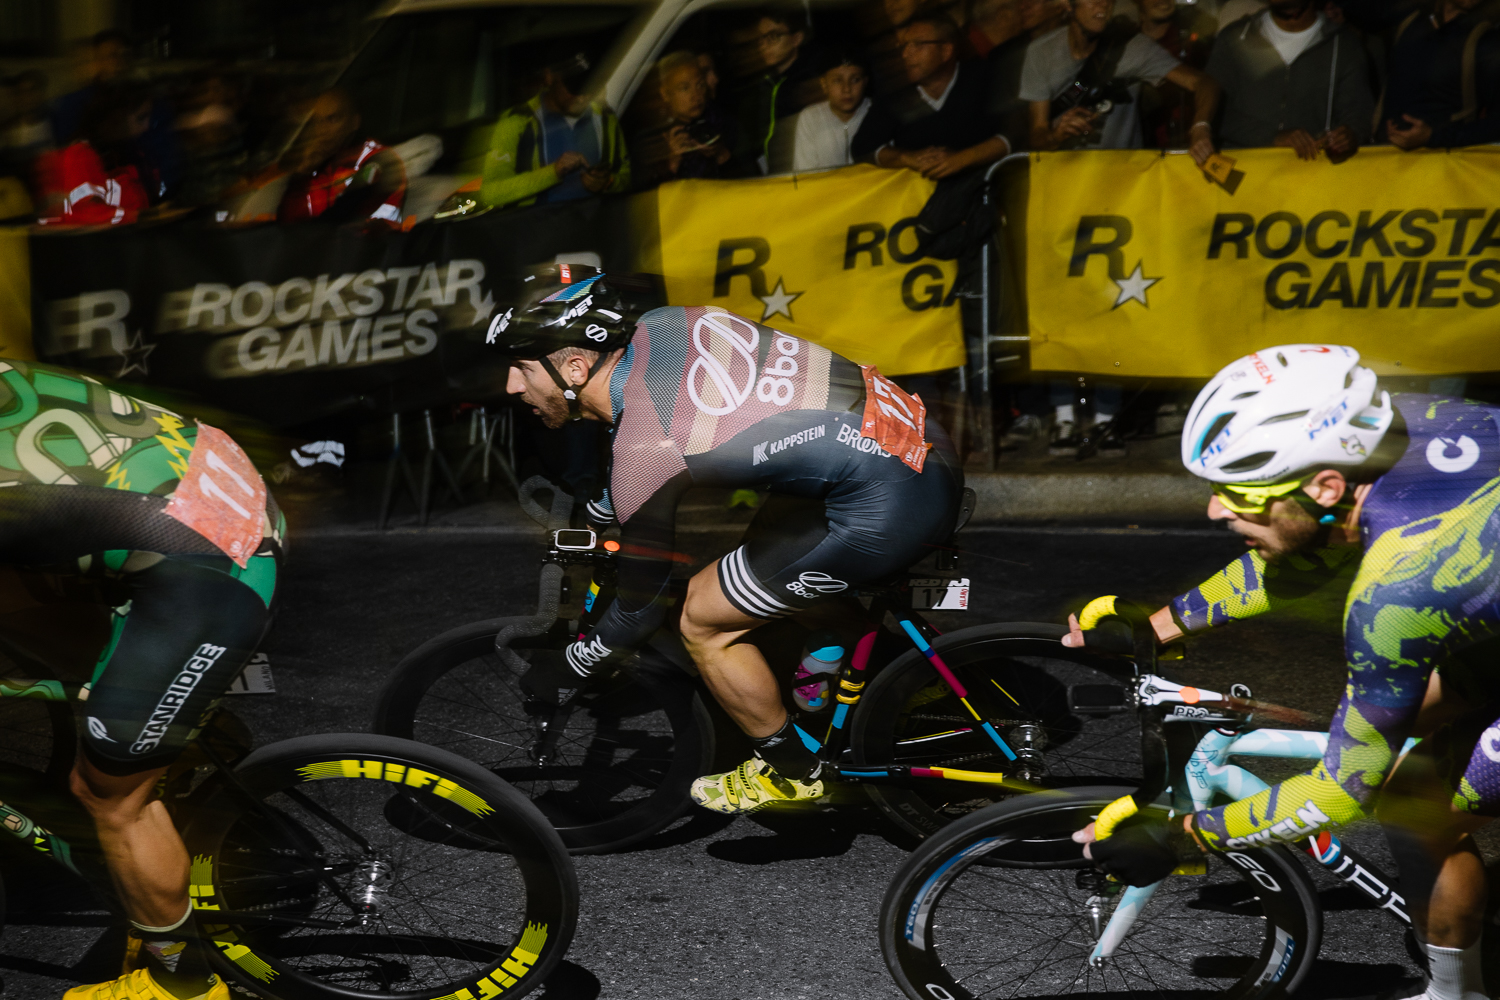 8bar team red hook crit milan 2017 frs20225 - Fast, faster, Red Hook Crit Milan